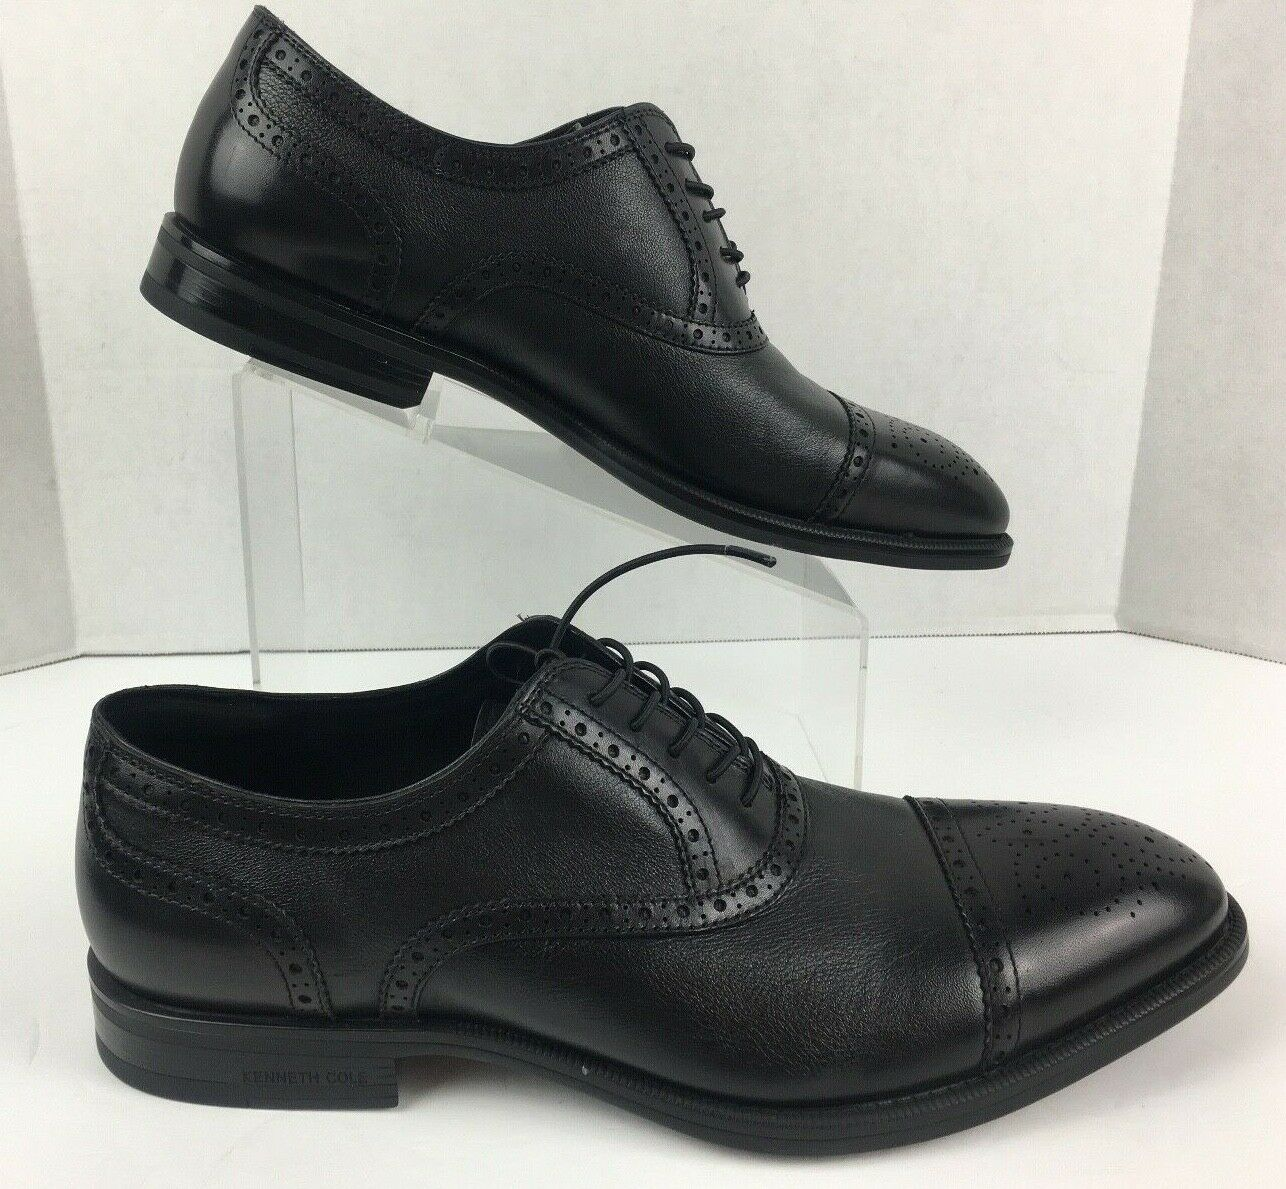 Kenneth Cole New York Mens FUTUREPOD Lace Up Black Leather Oxfords Shoe Size 12M